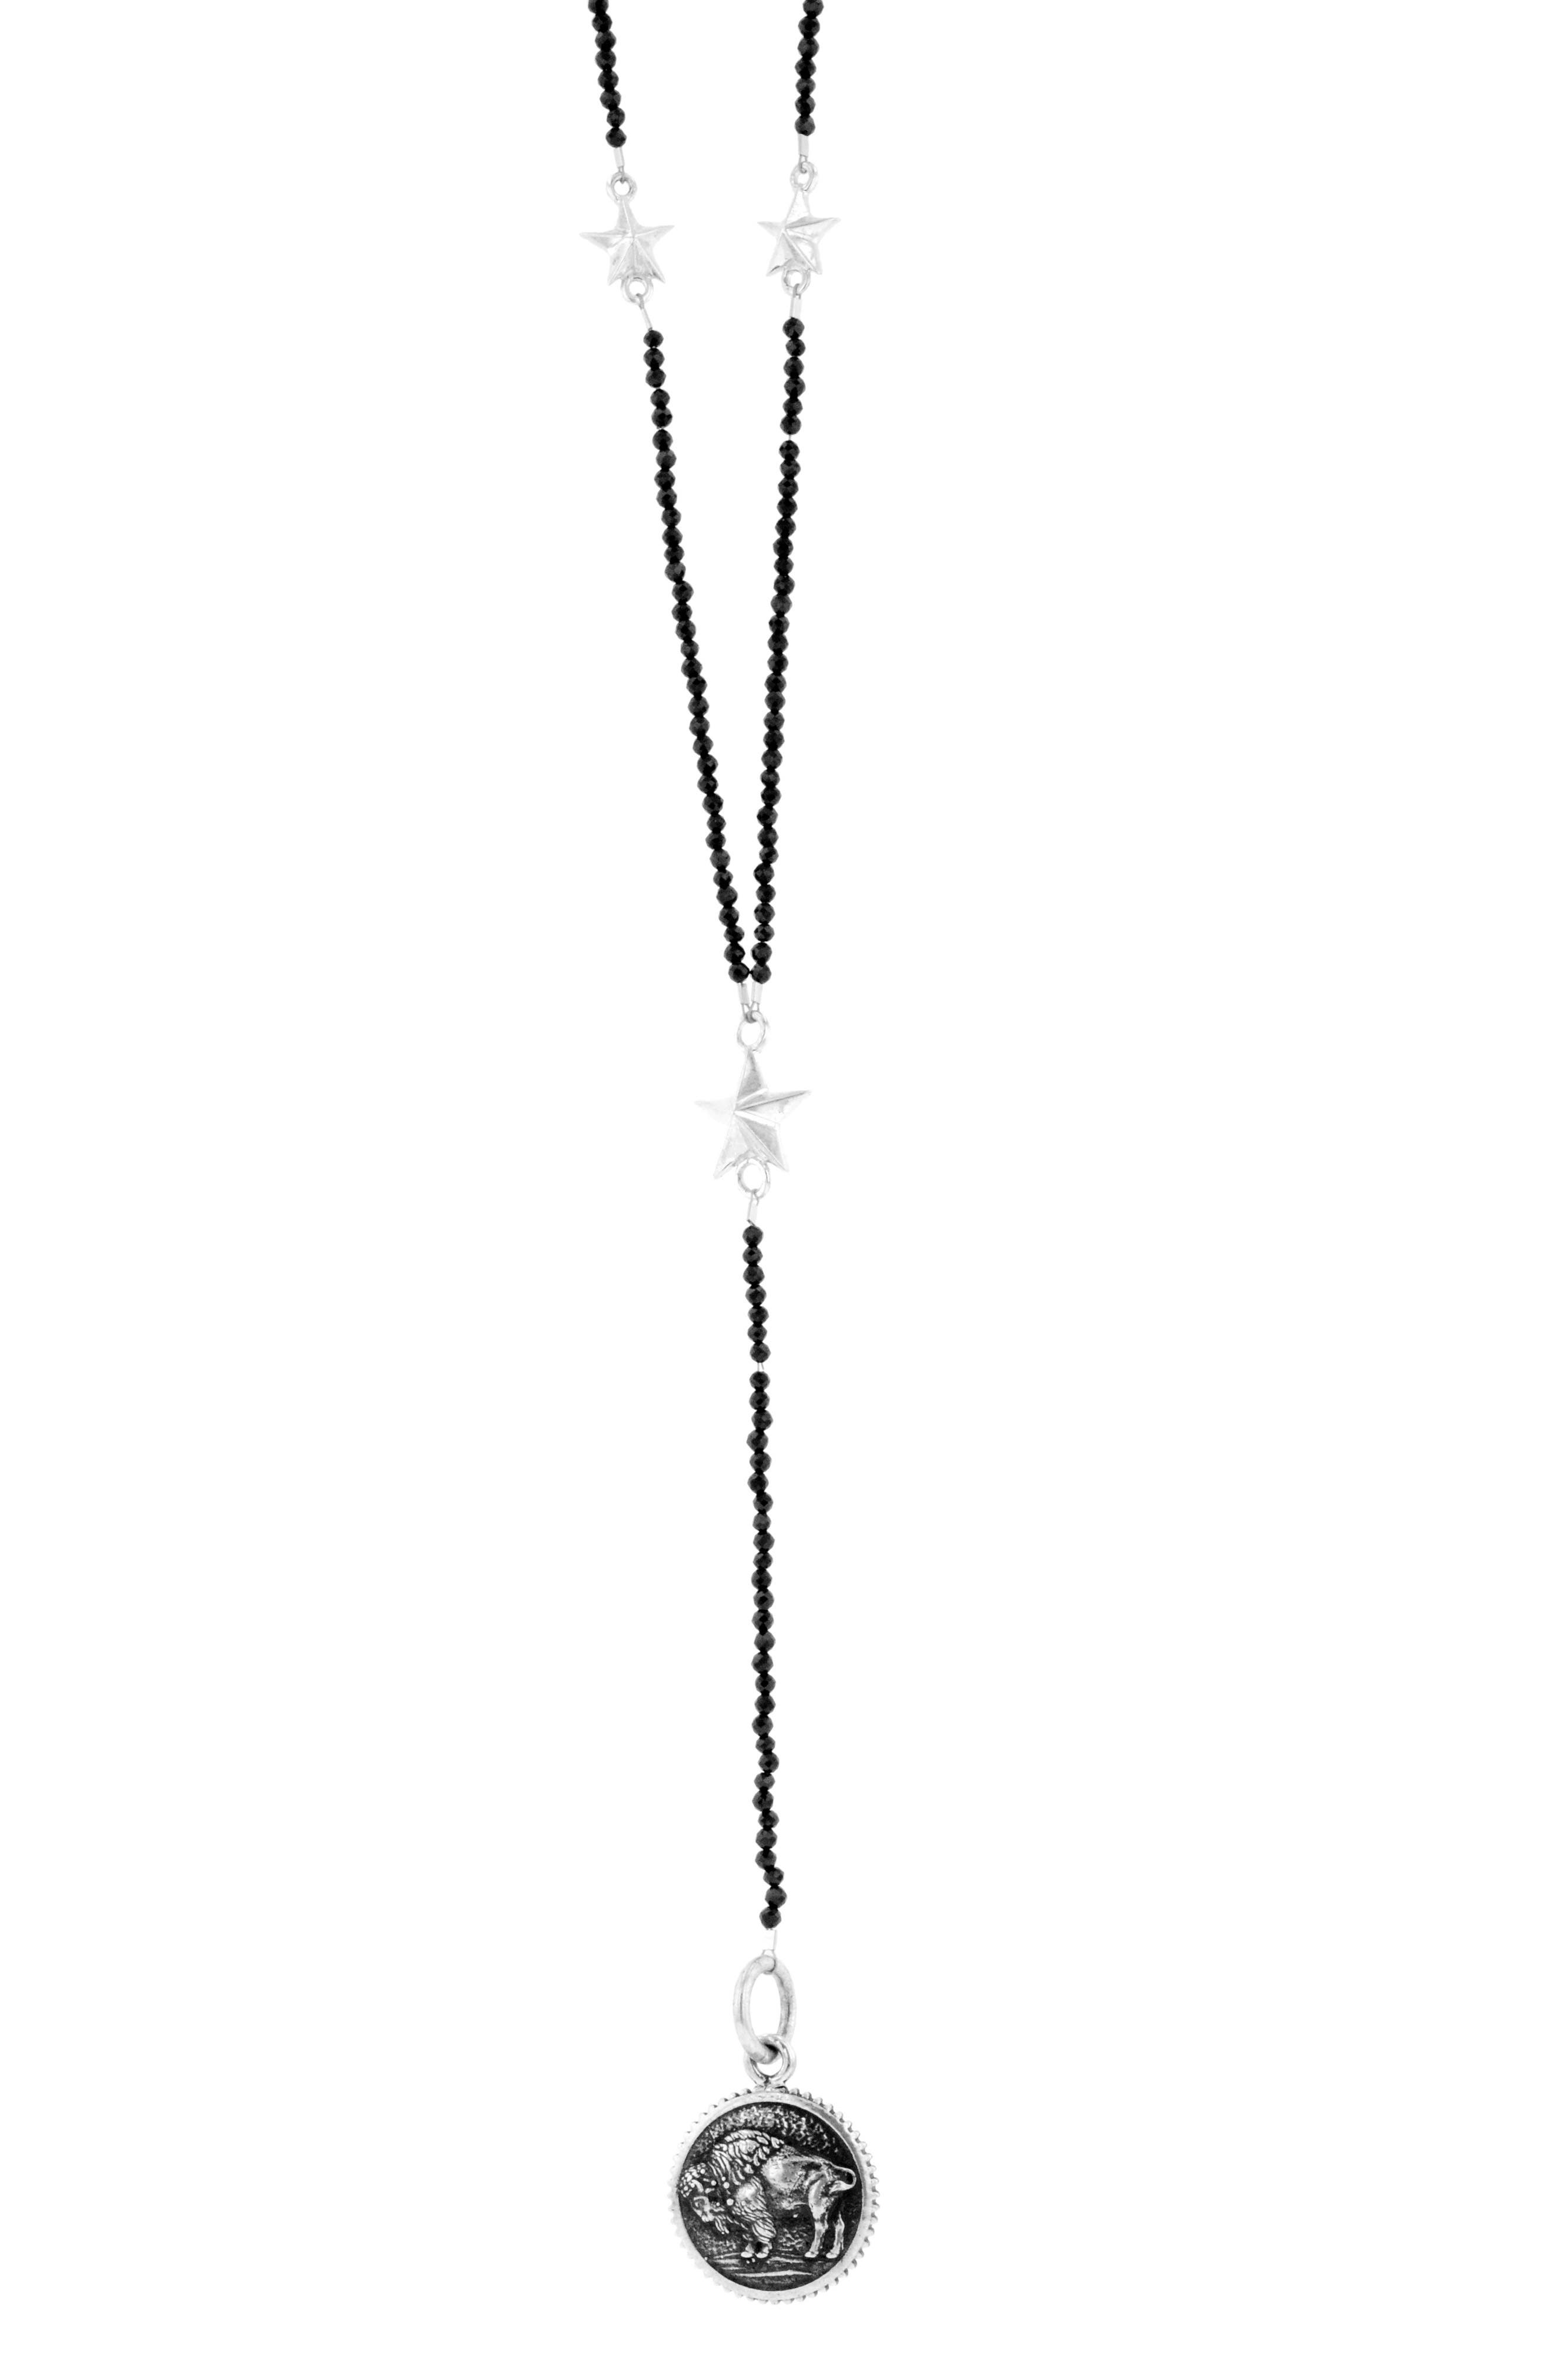 KING BABY Buffalo Rosary Necklace in Silver/ Black